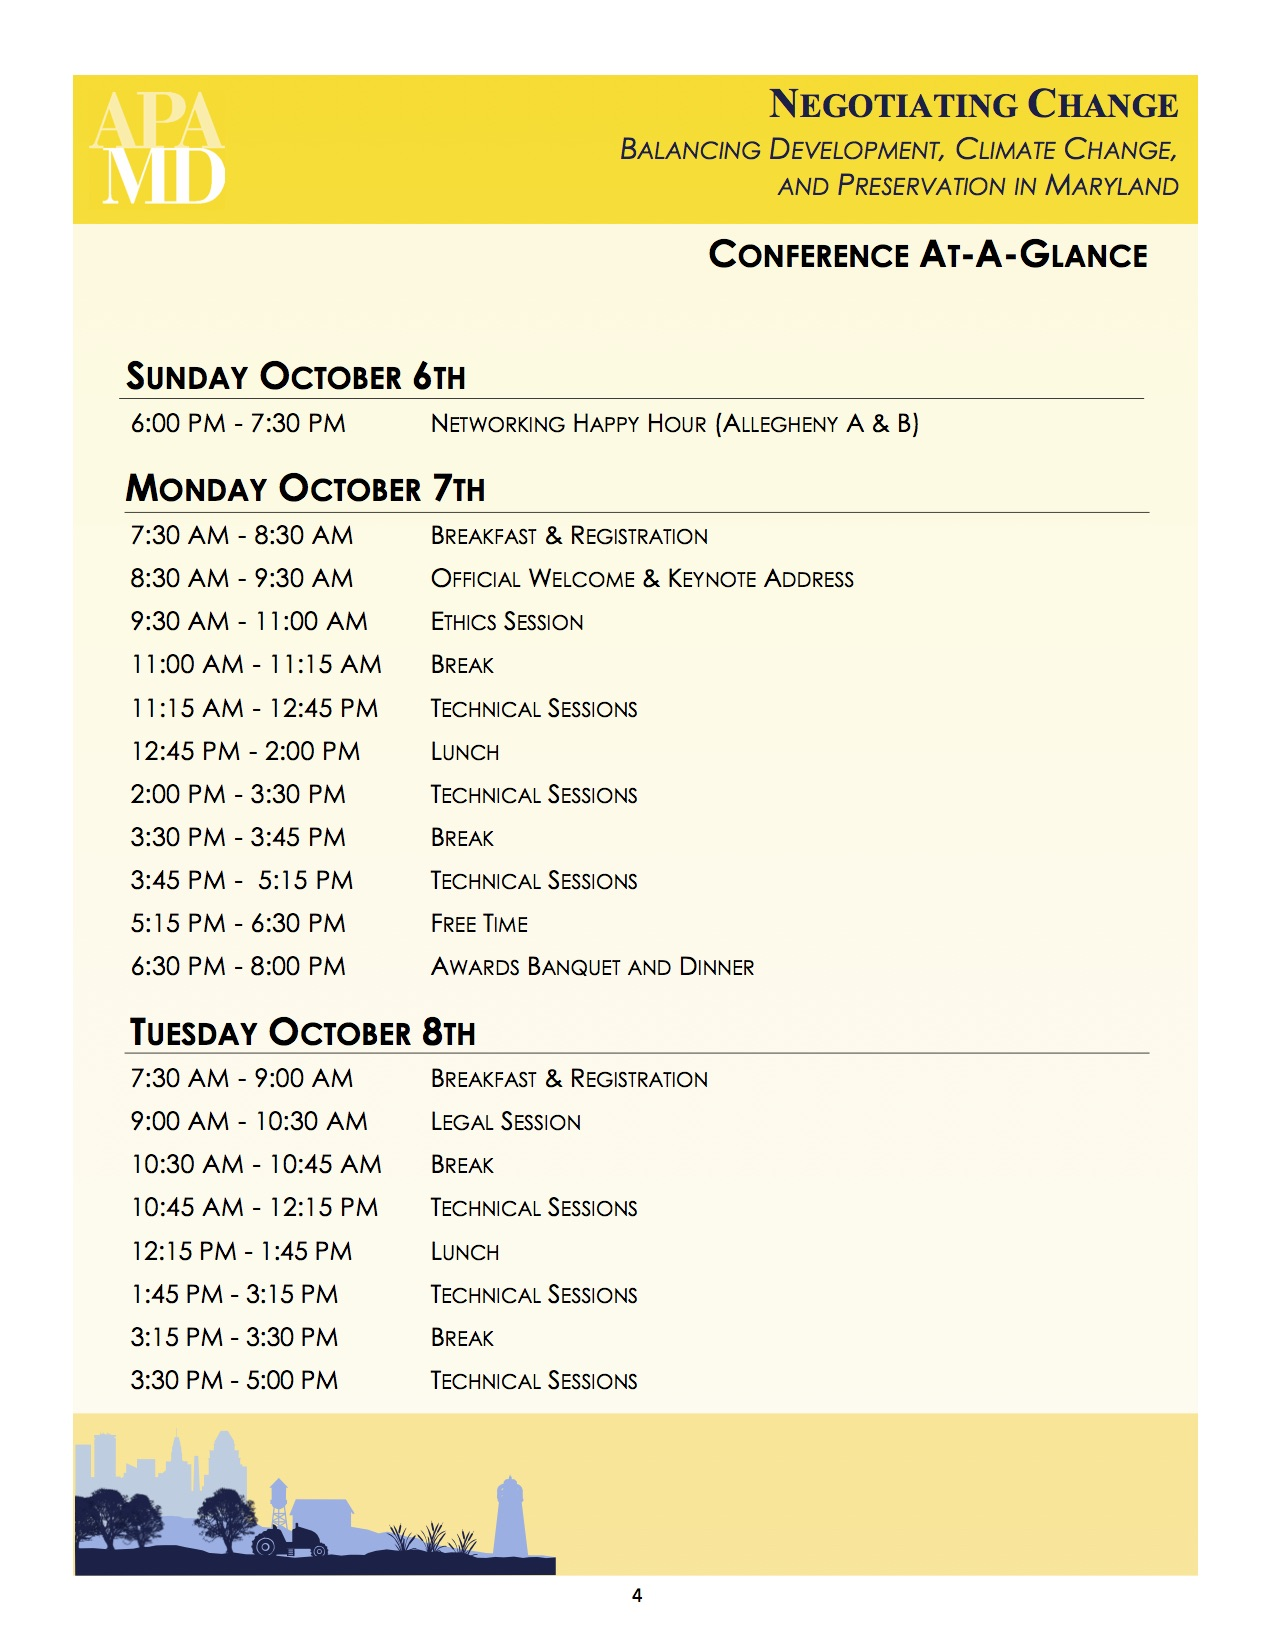 Conference Schedule Page 4.jpg